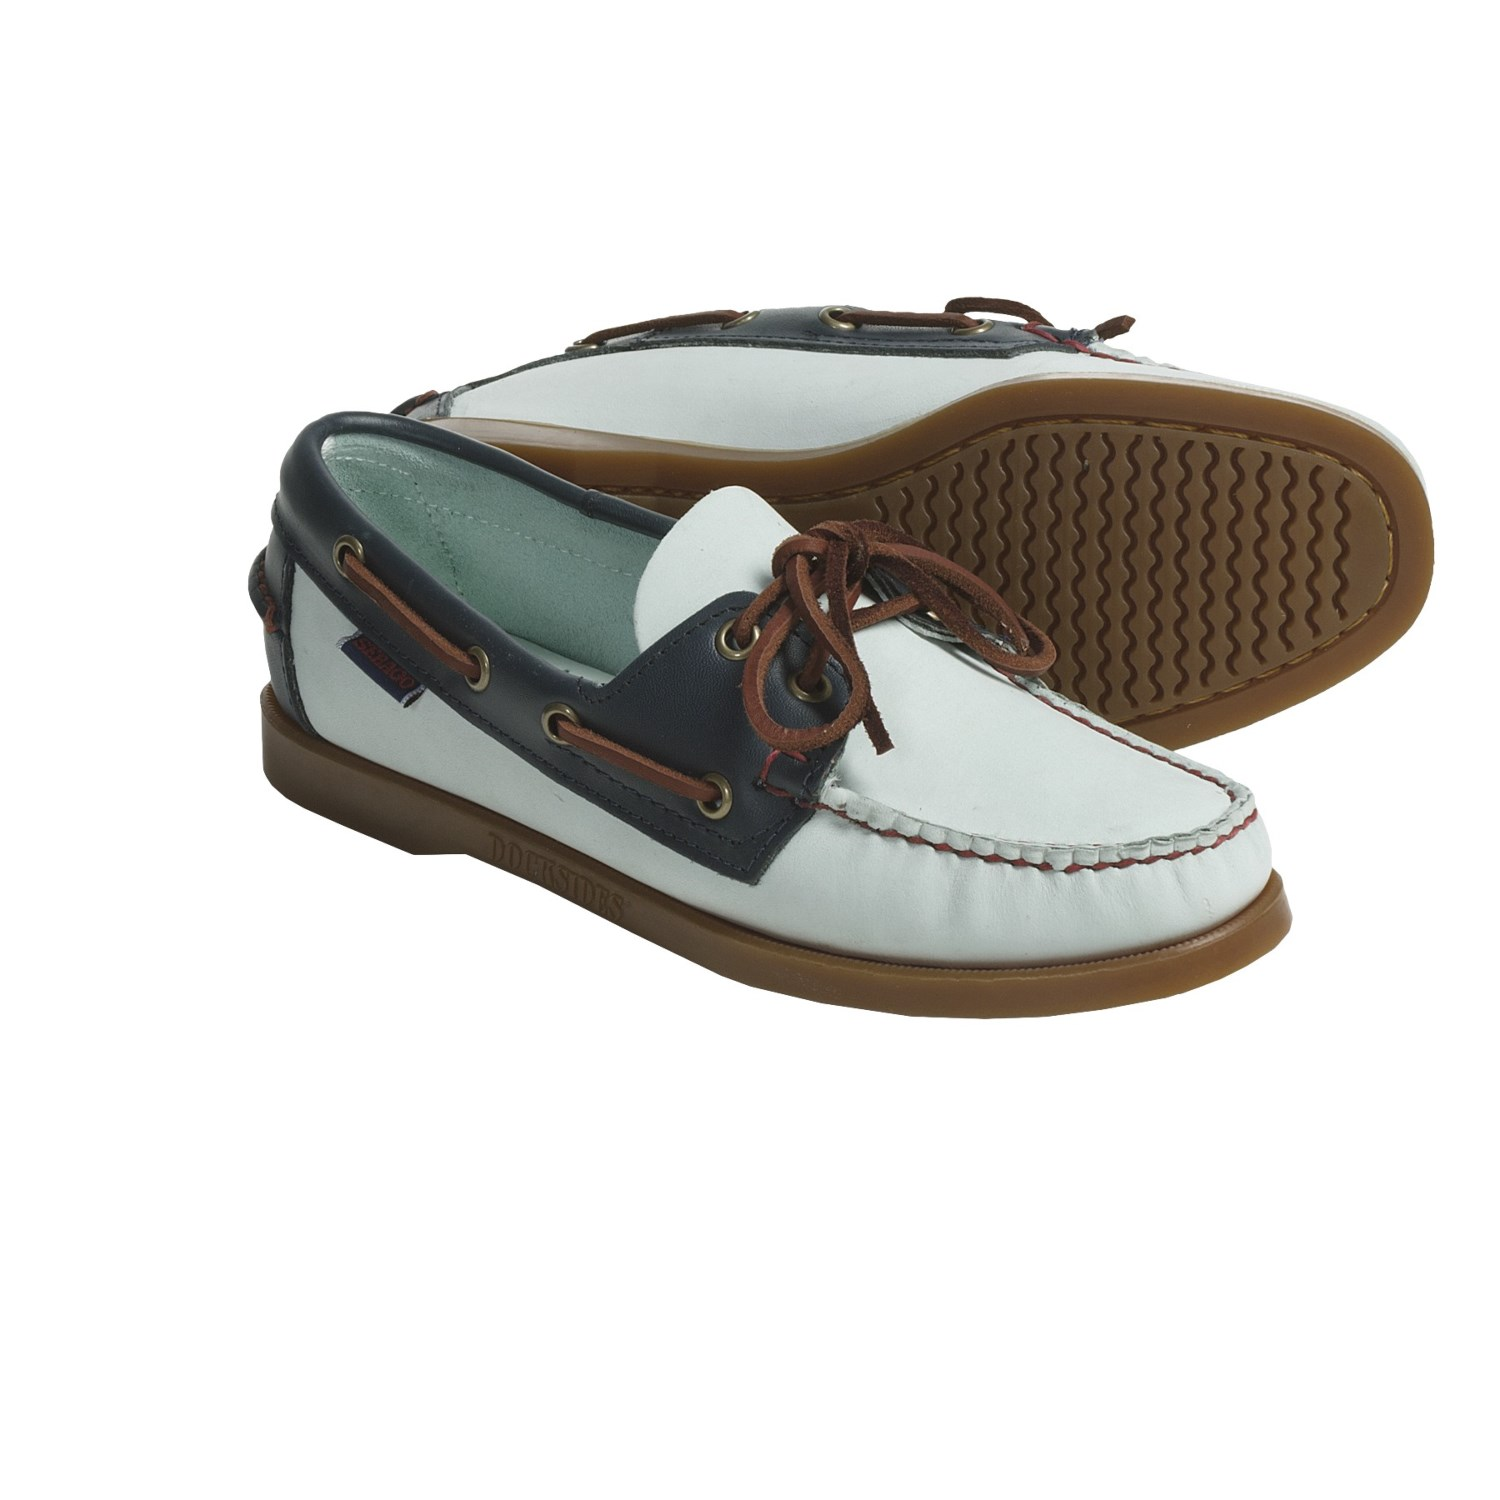 Source url: http://www.sierratradingpost.com/womens-shoes~d~266/sebago